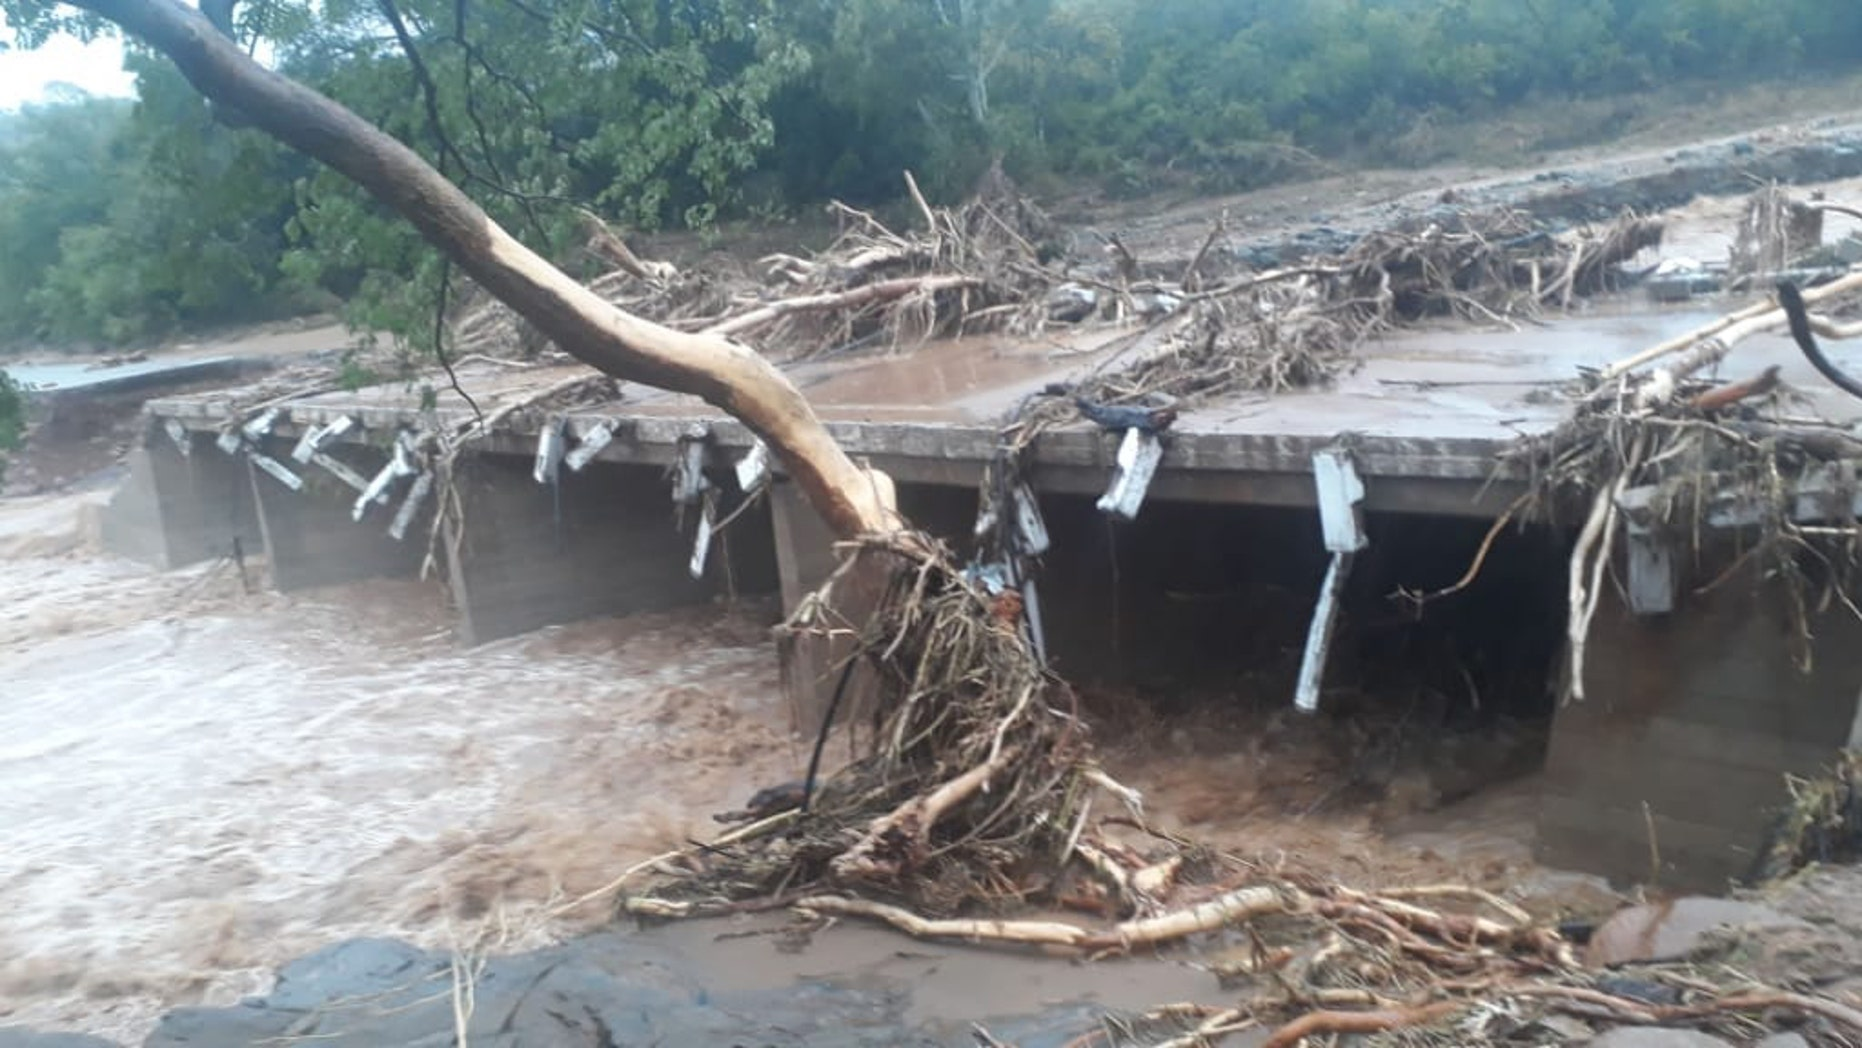 Cyclone Idai has ripped through Malawi Mozambique and Zimbabwe leaving an estimated 140 people dead and hundreds more missing